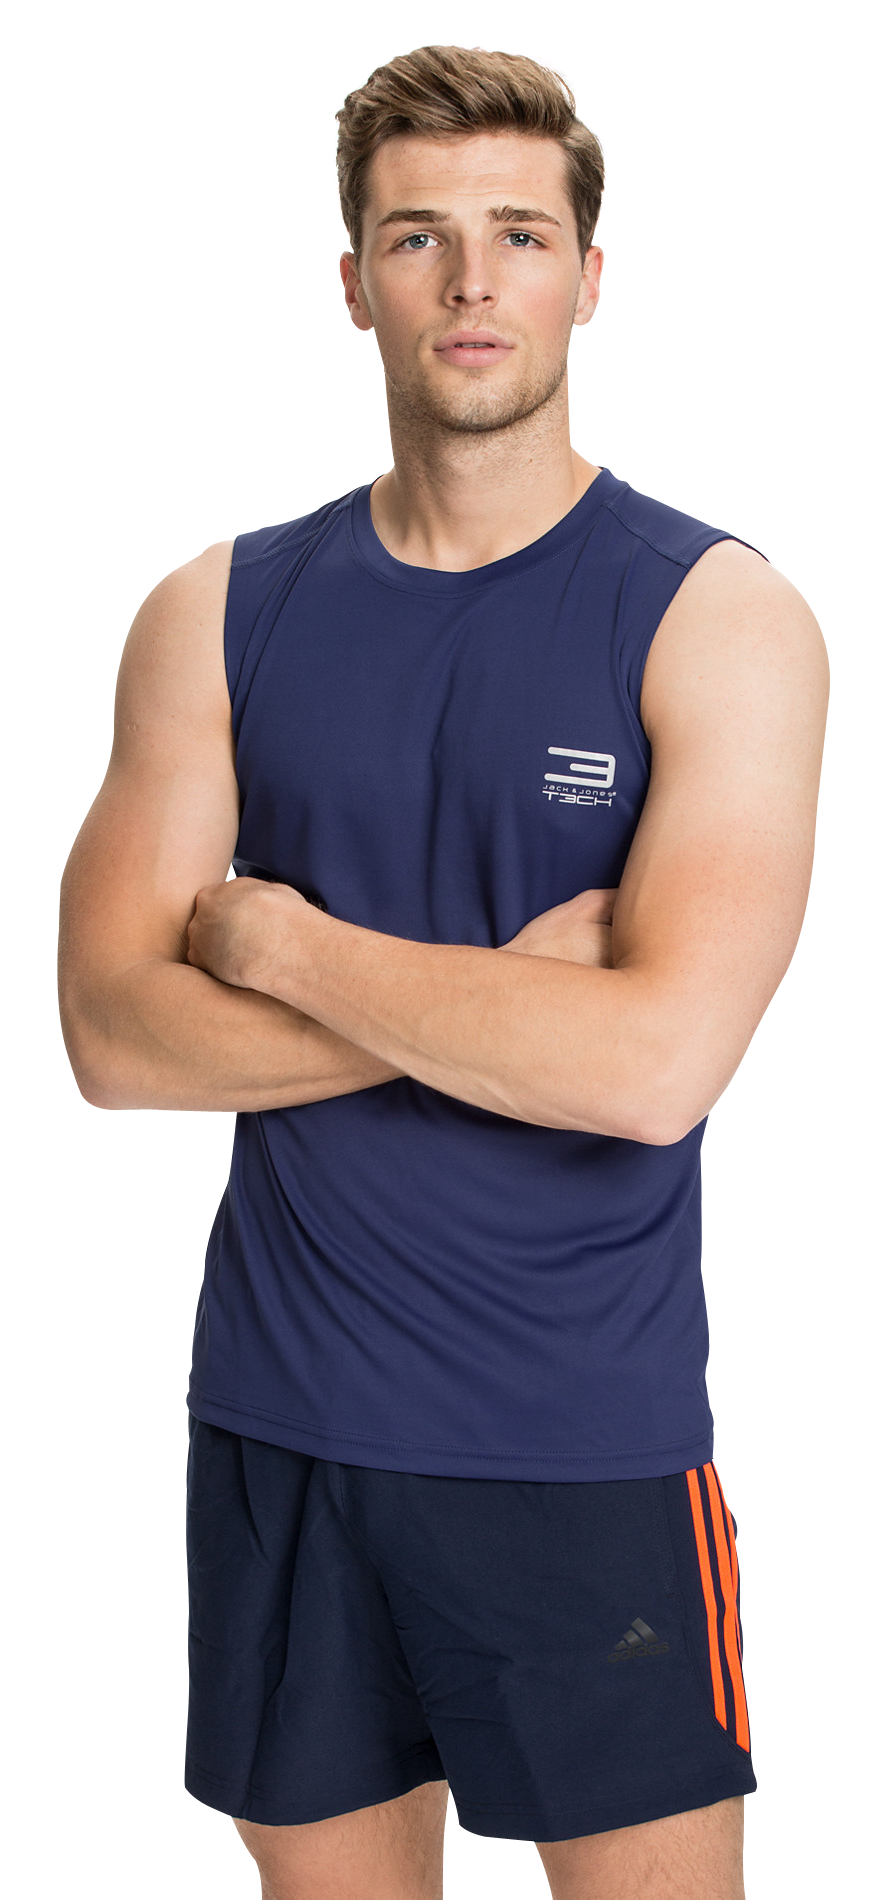 man, men fitness png transparent image pngpix #12344